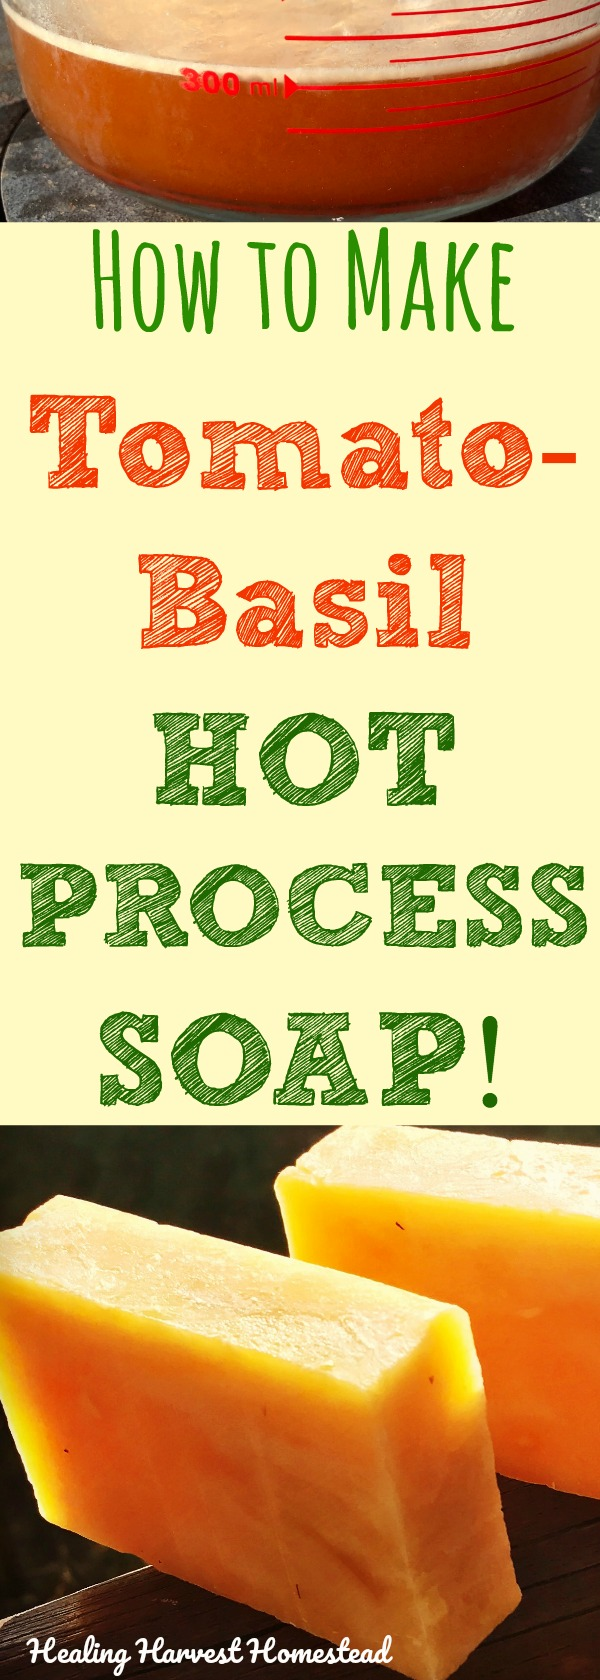 Find out how to make refreshing, herbal Tomato Basil Hot Process soap with this unique soap recipe! It's moisturizing, lathers great, and gives you mental clarity---thanks to the Basil essential oil. Directions for Hot Process Soap with a VERY cool soap recipe.